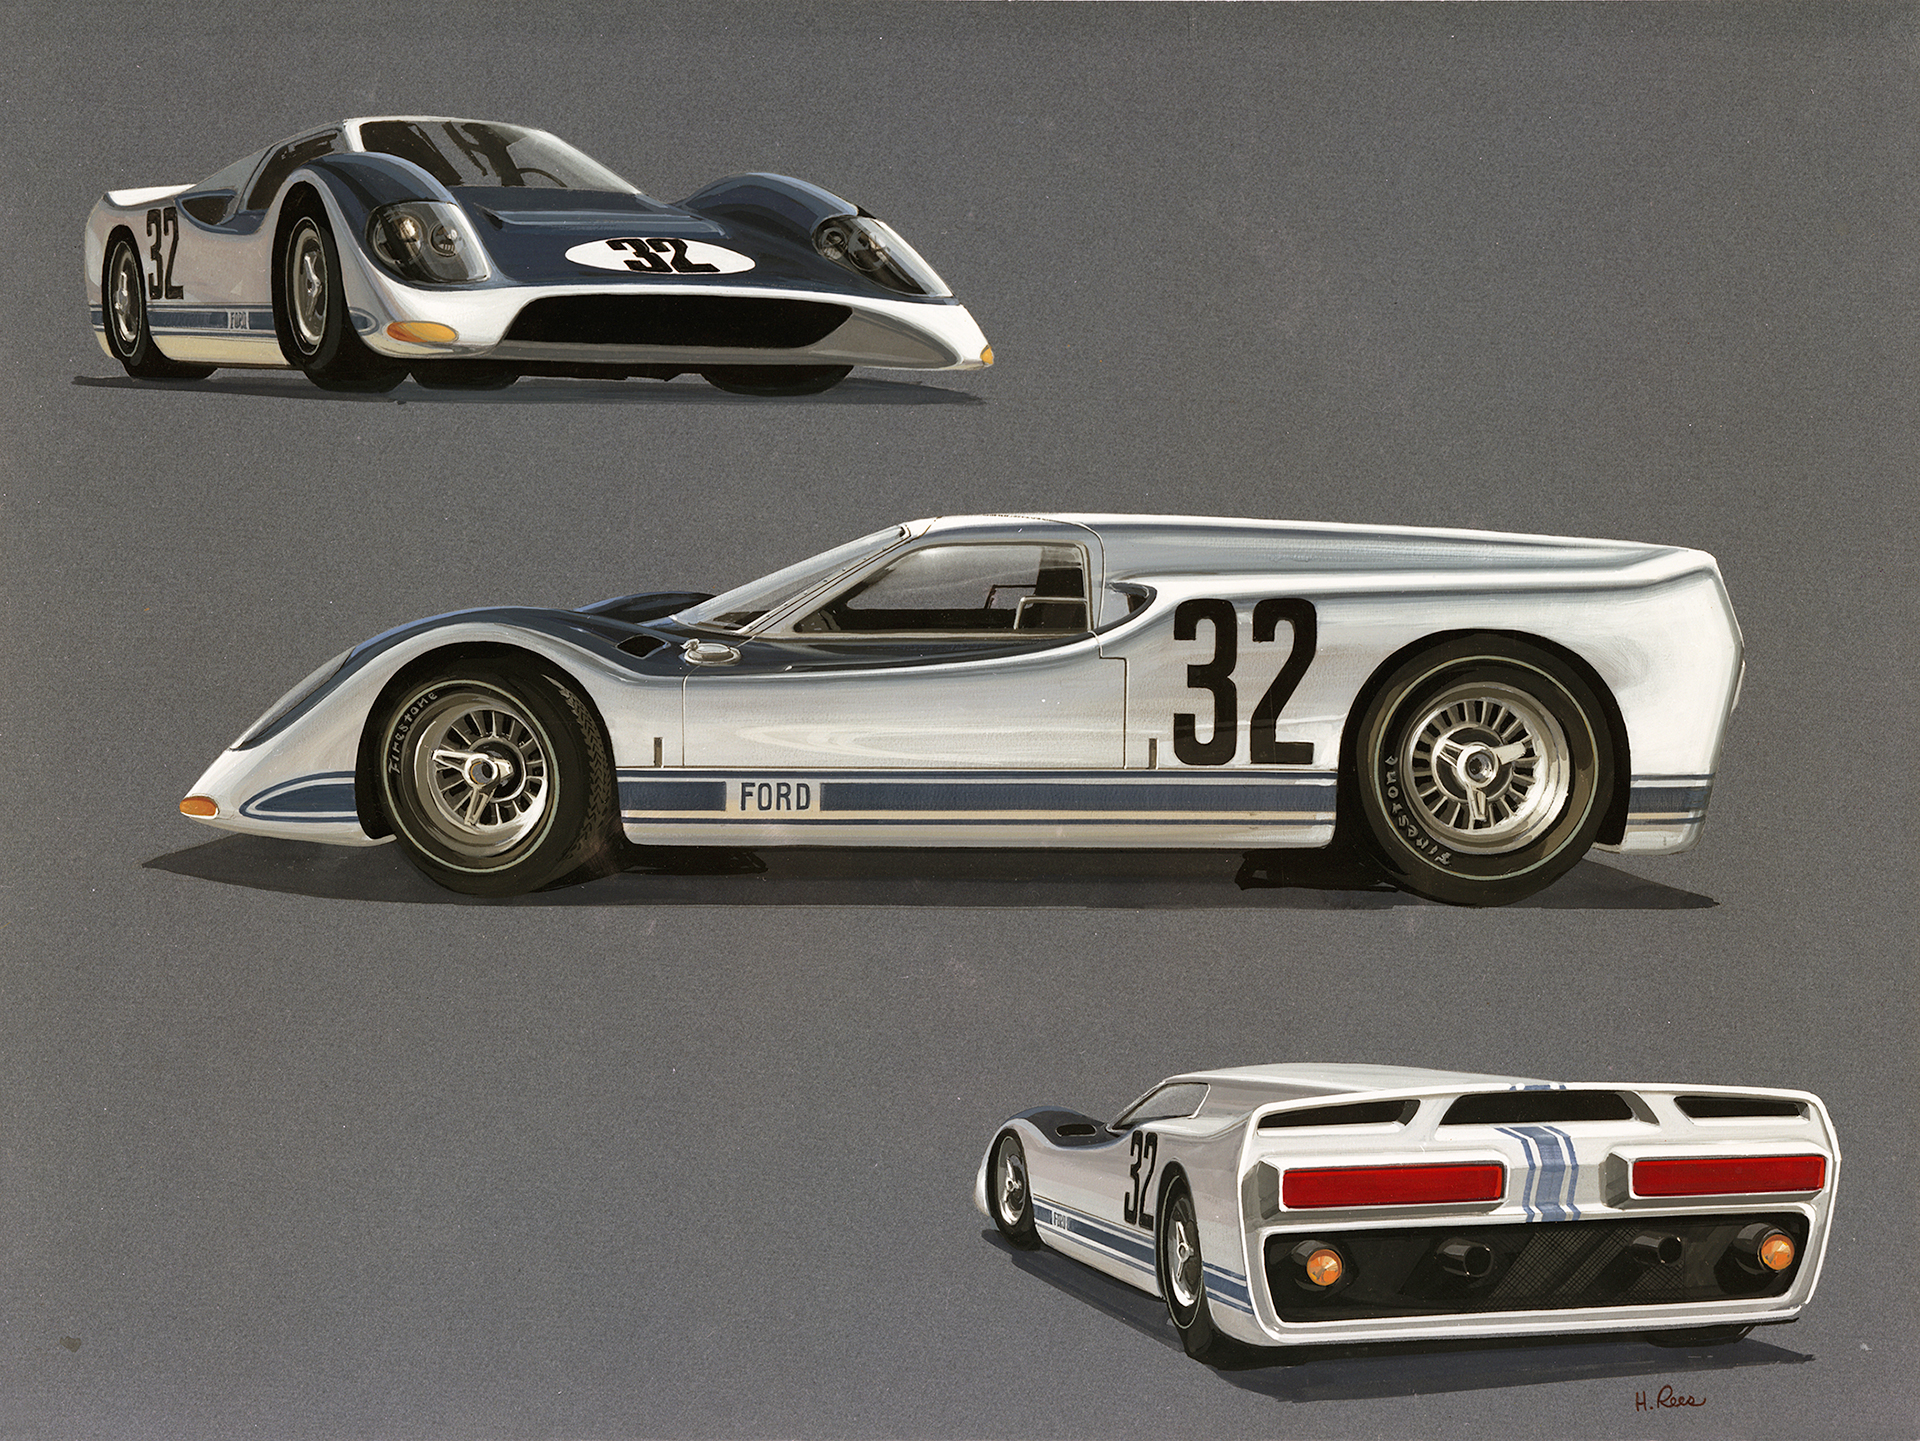 Ford GT - 1965 car rendering